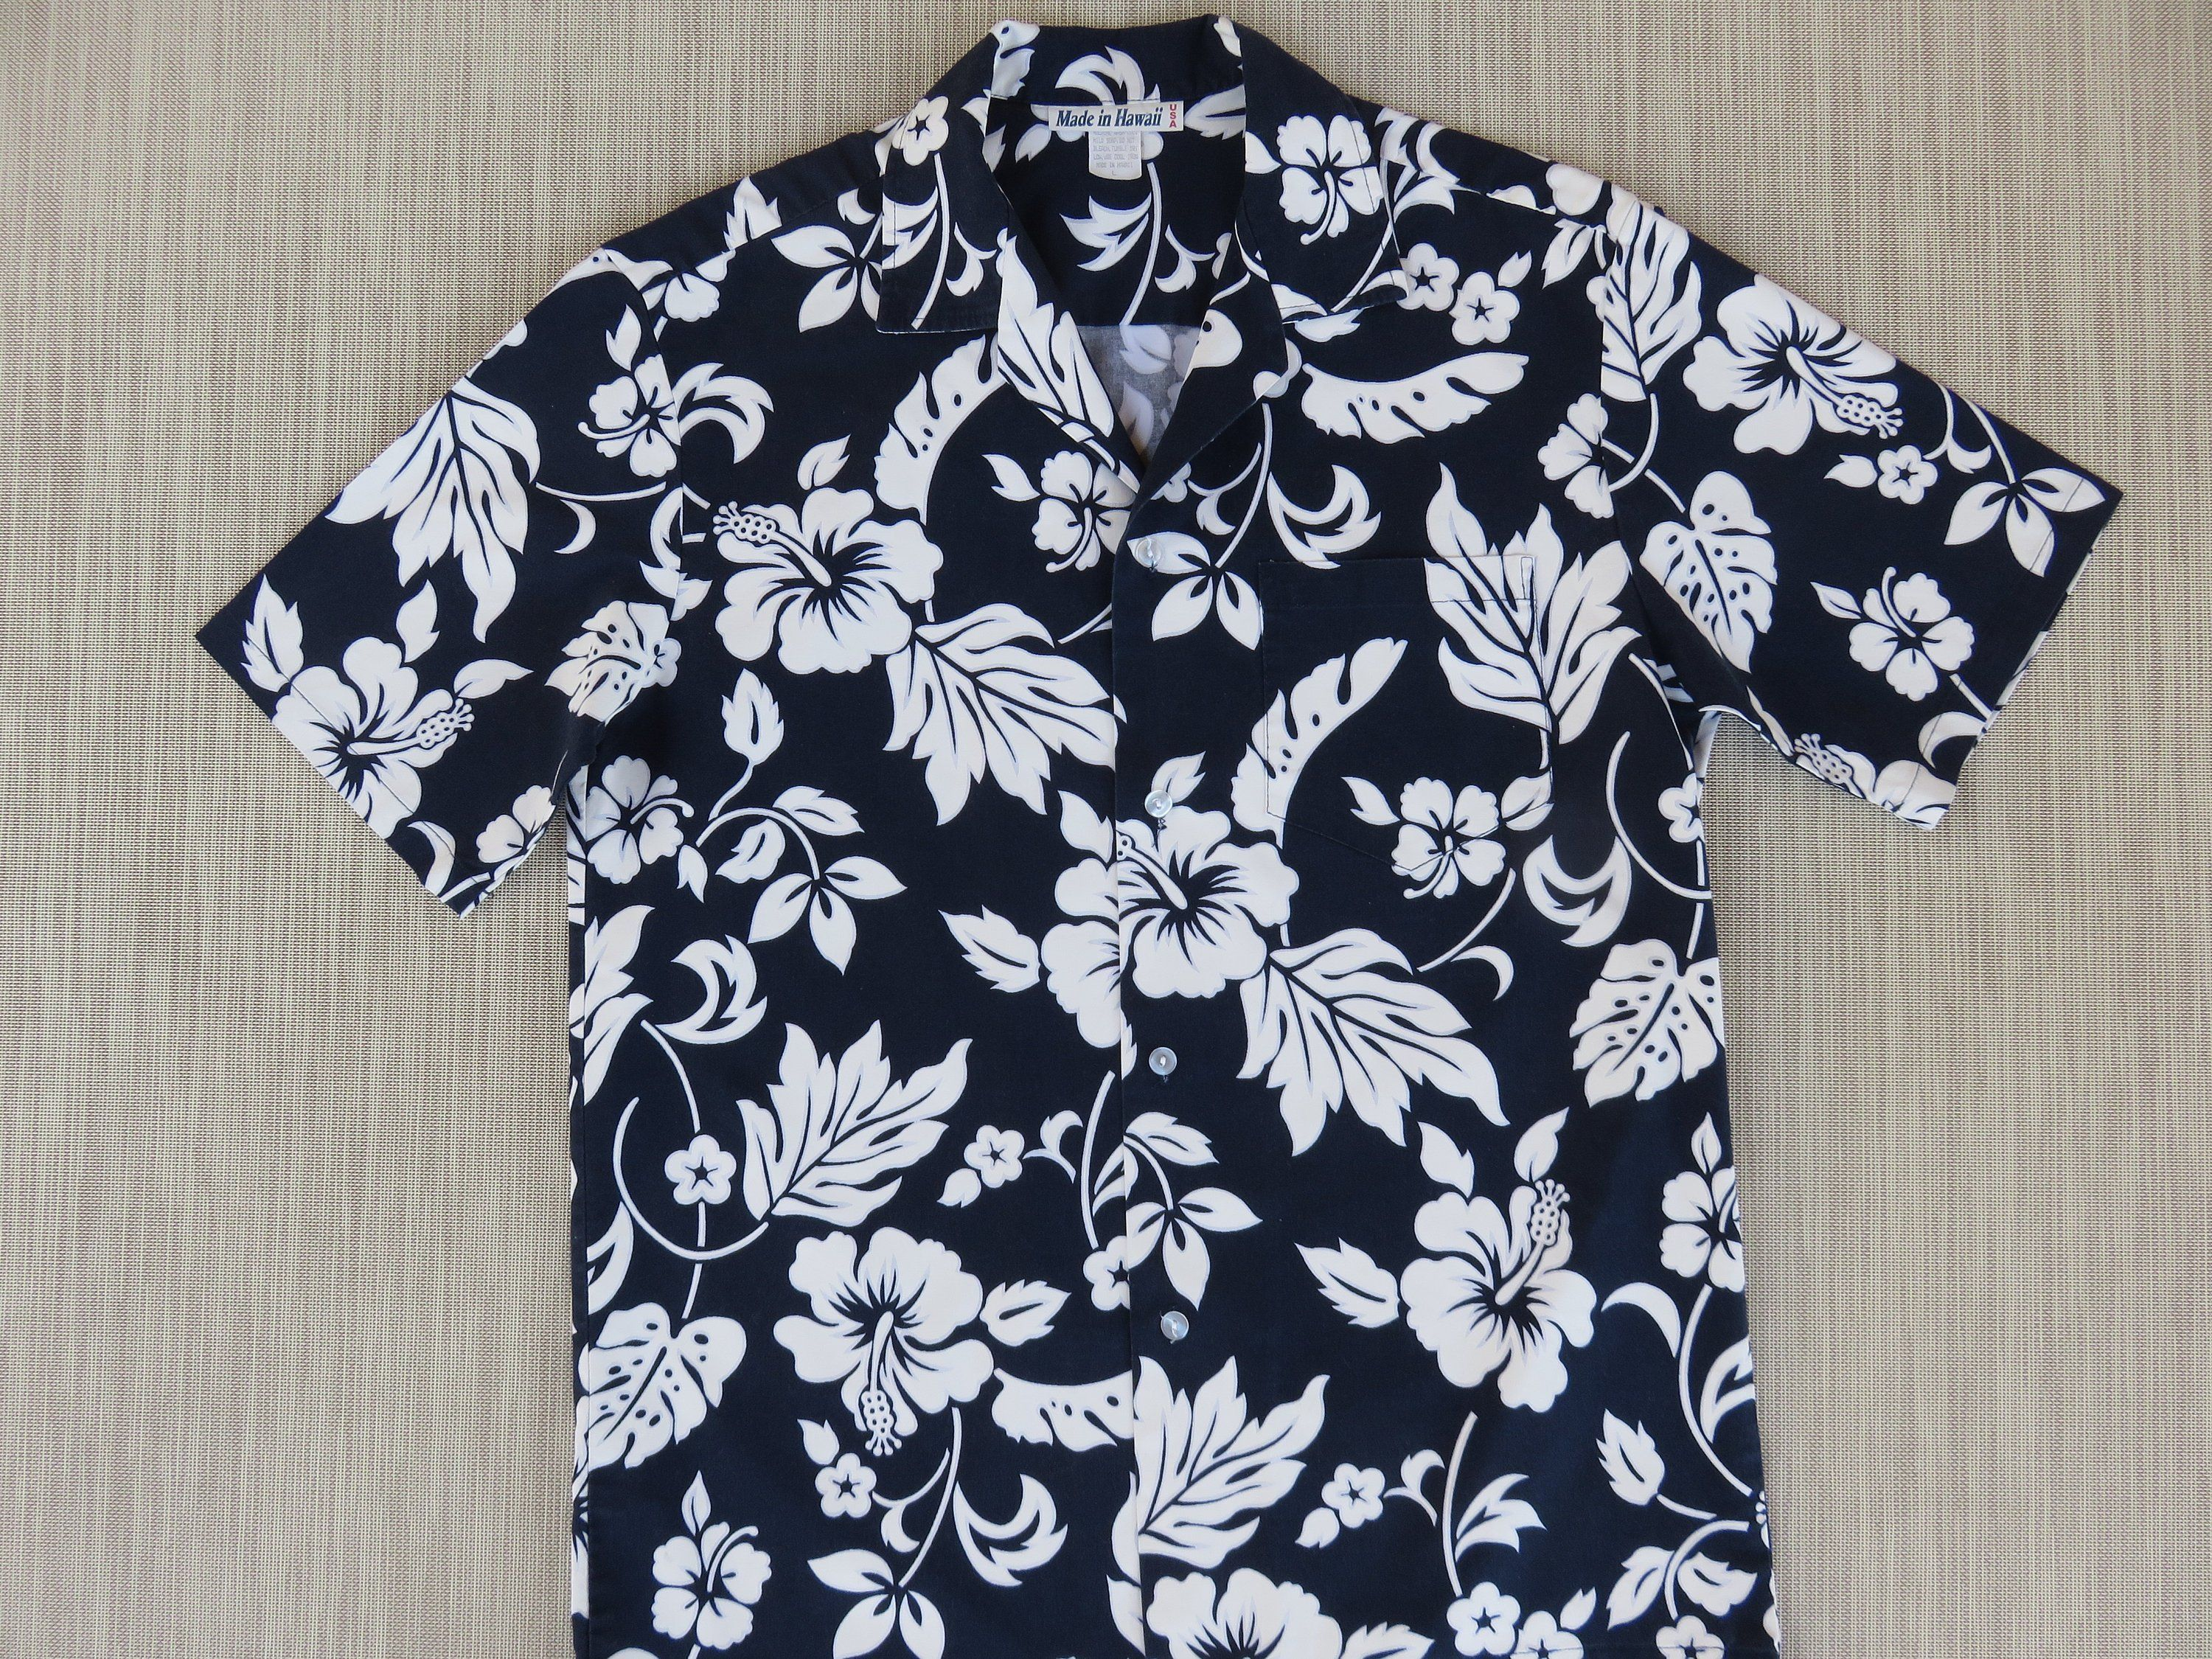 ecbfd14f Mens Hawaiian Shirt MADE in HAWAII Hip Navy Blue Aloha Shirt Trippy  Tropical Hibiscus Flower 100% Cotton Camp - L - Oahu Lew's Shirt Shack by  ...